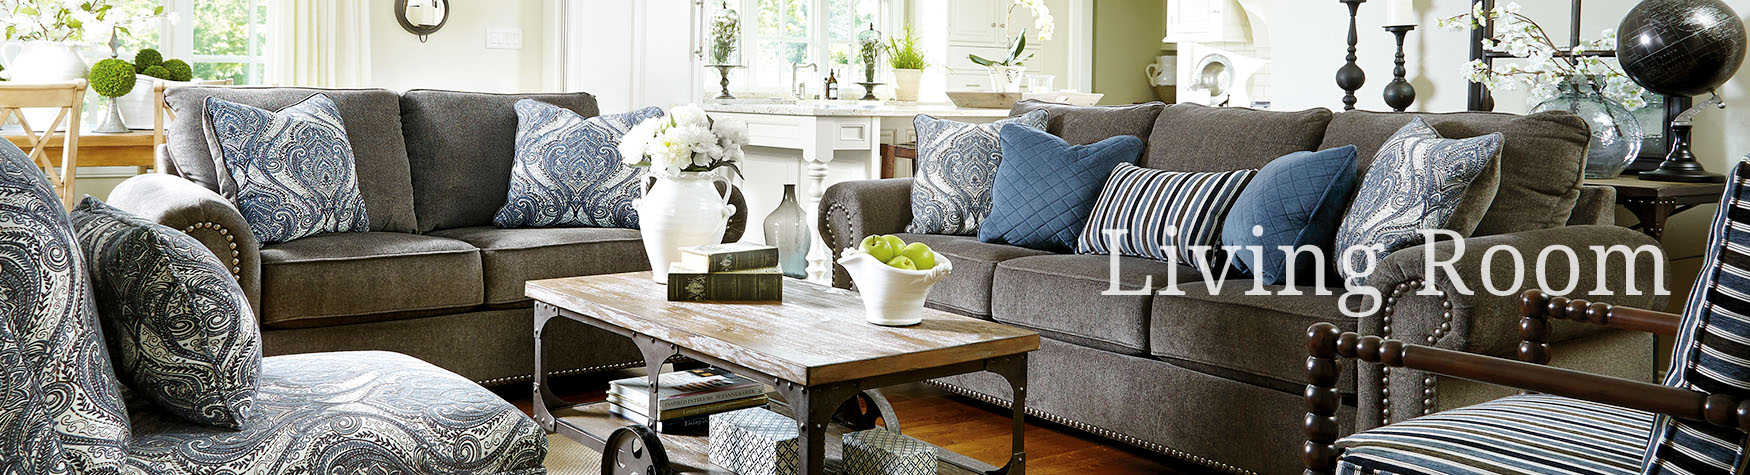 Living Room Furniture On Sale Near Ft Bragg In Fayetteville Nc At